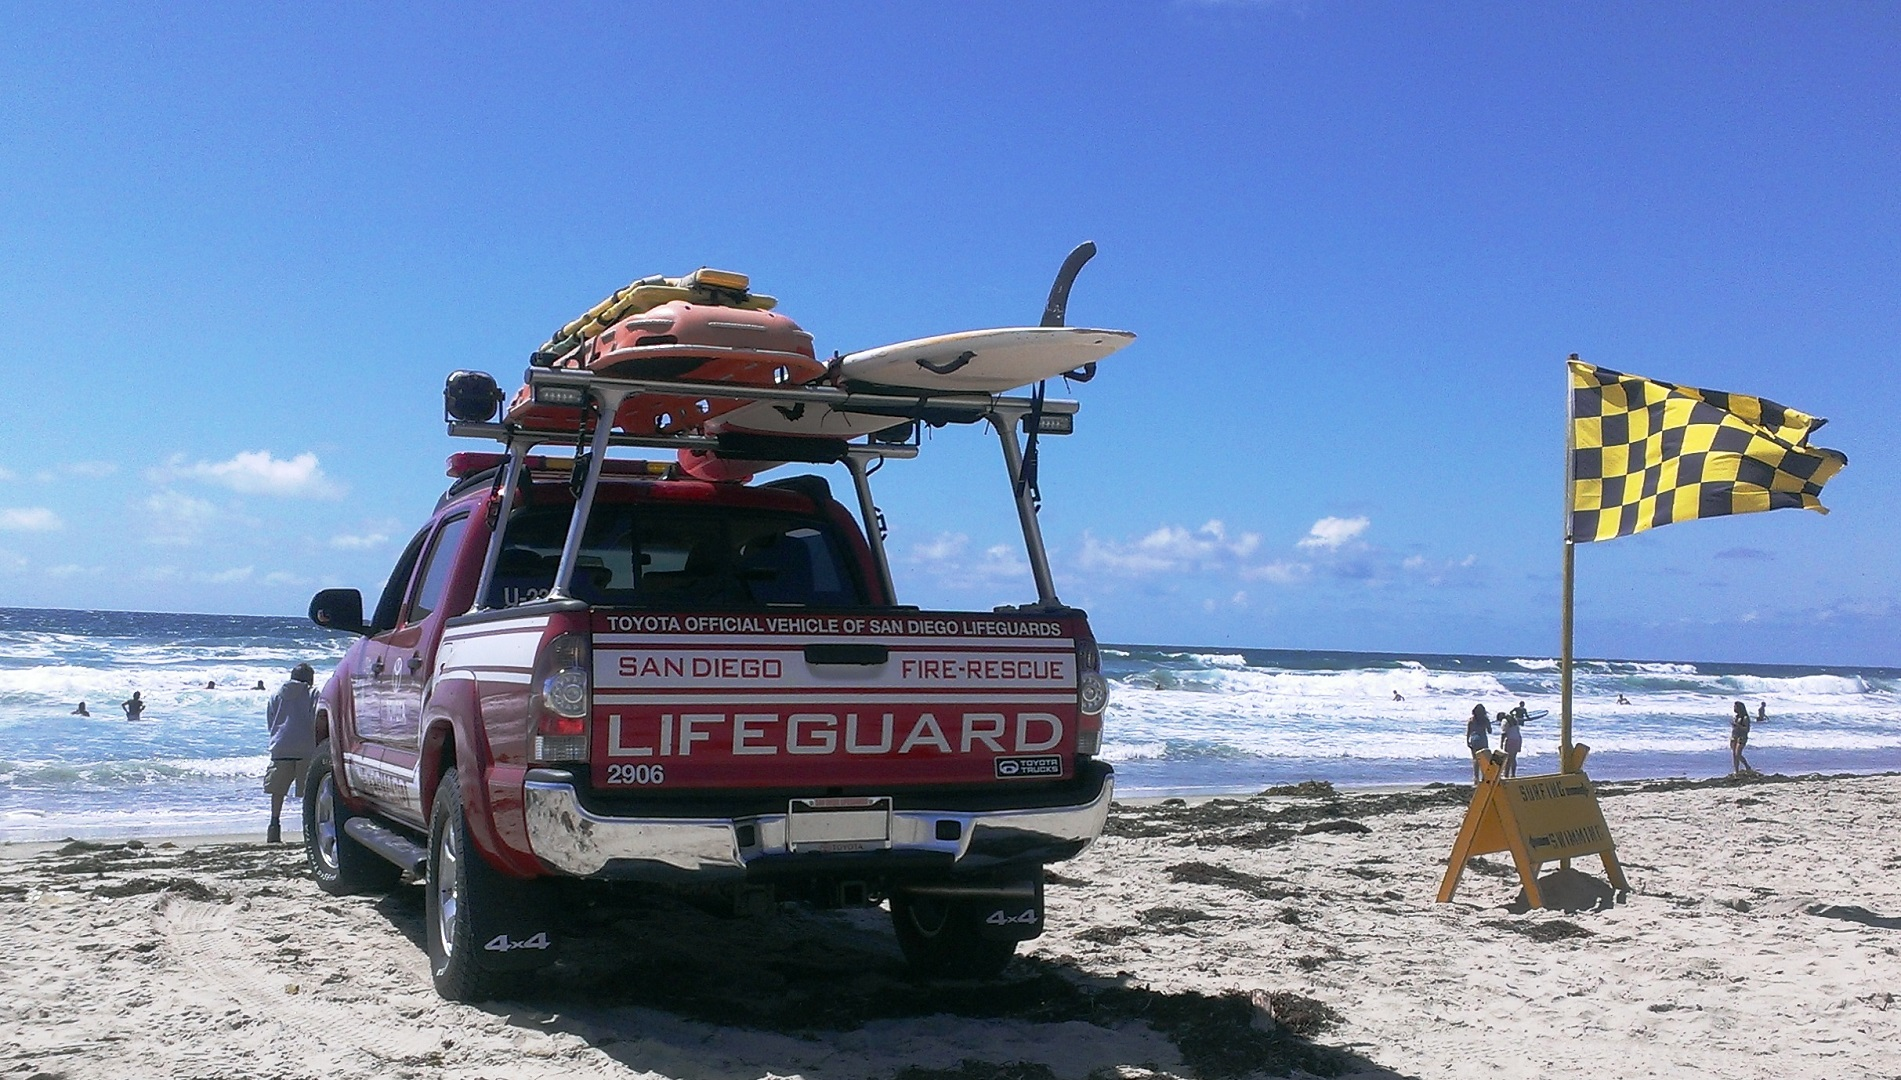 Toyota Aiding San Diego Lifeguards in Beach Safety Promotion